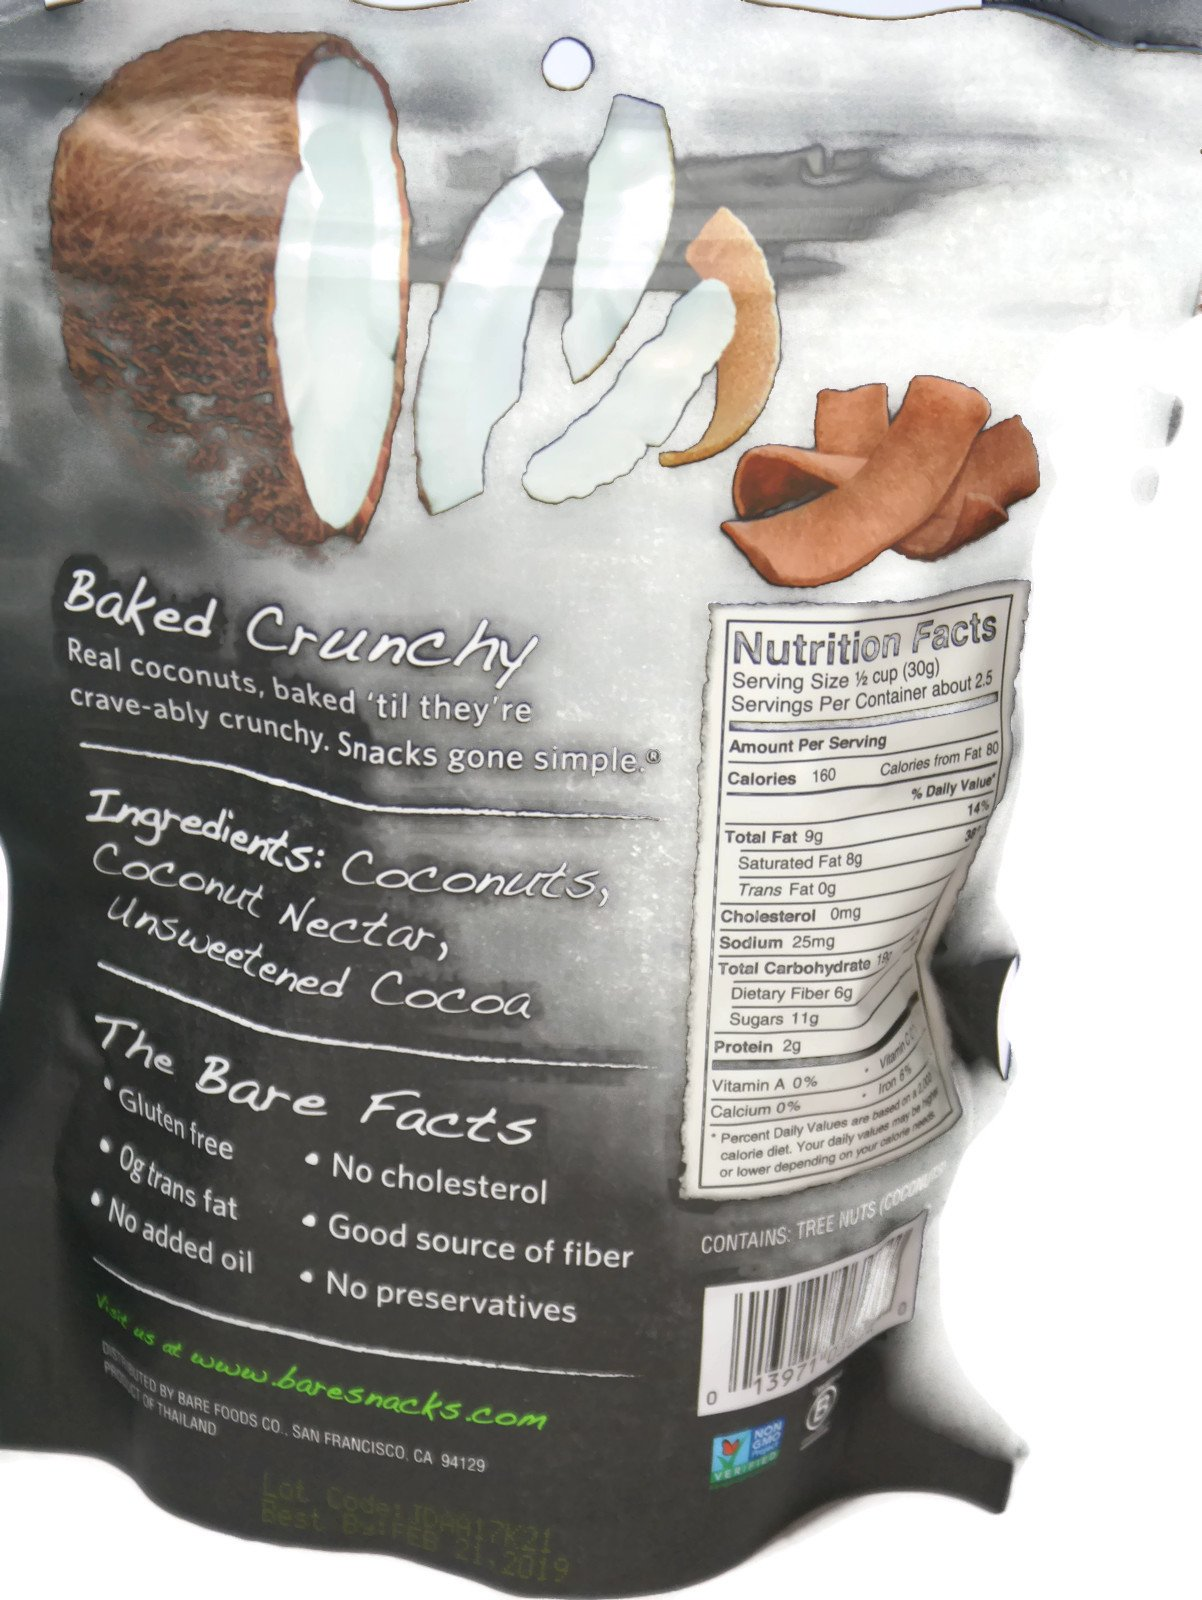 Variety Pack - Bare Fruit Chips - Toasted Coconut (3.3 oz), Chocolate Coconut (2.8 oz), Simply Banana (2.7 oz), Cinnamon Banana (2.7 oz) by General (Image #3)